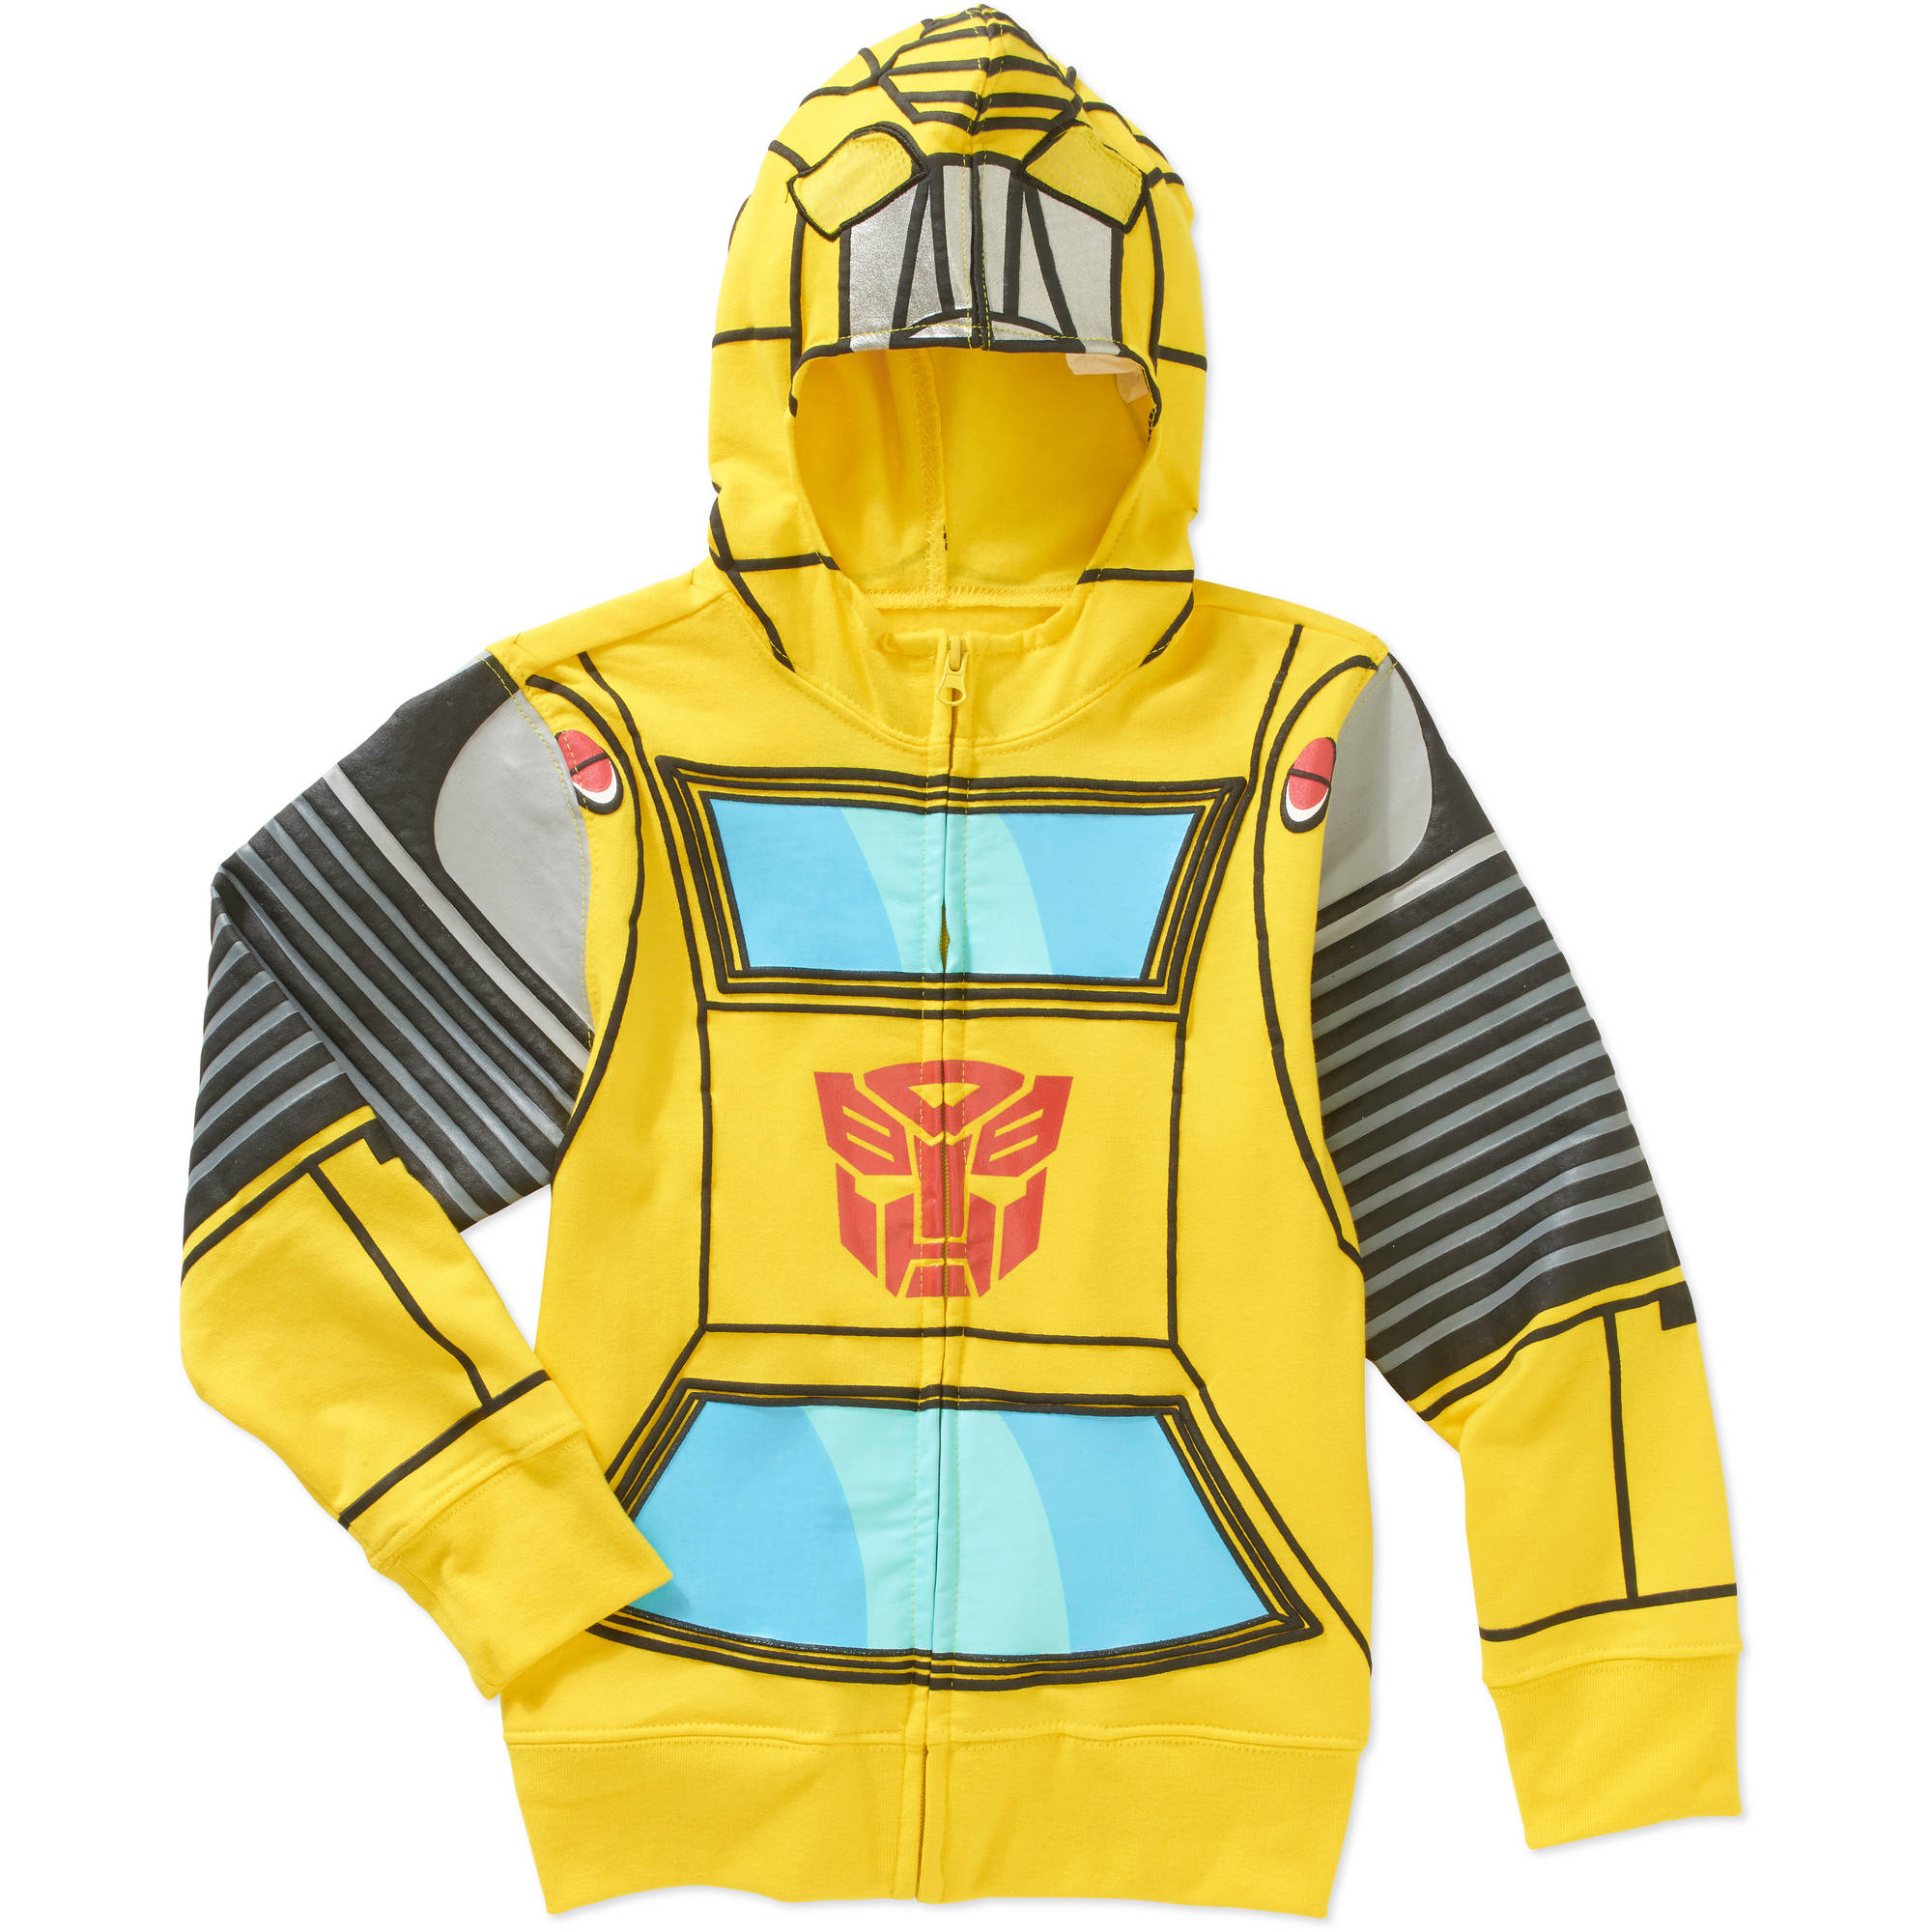 Transformers Bumble Bee Boys Costume Hoodie